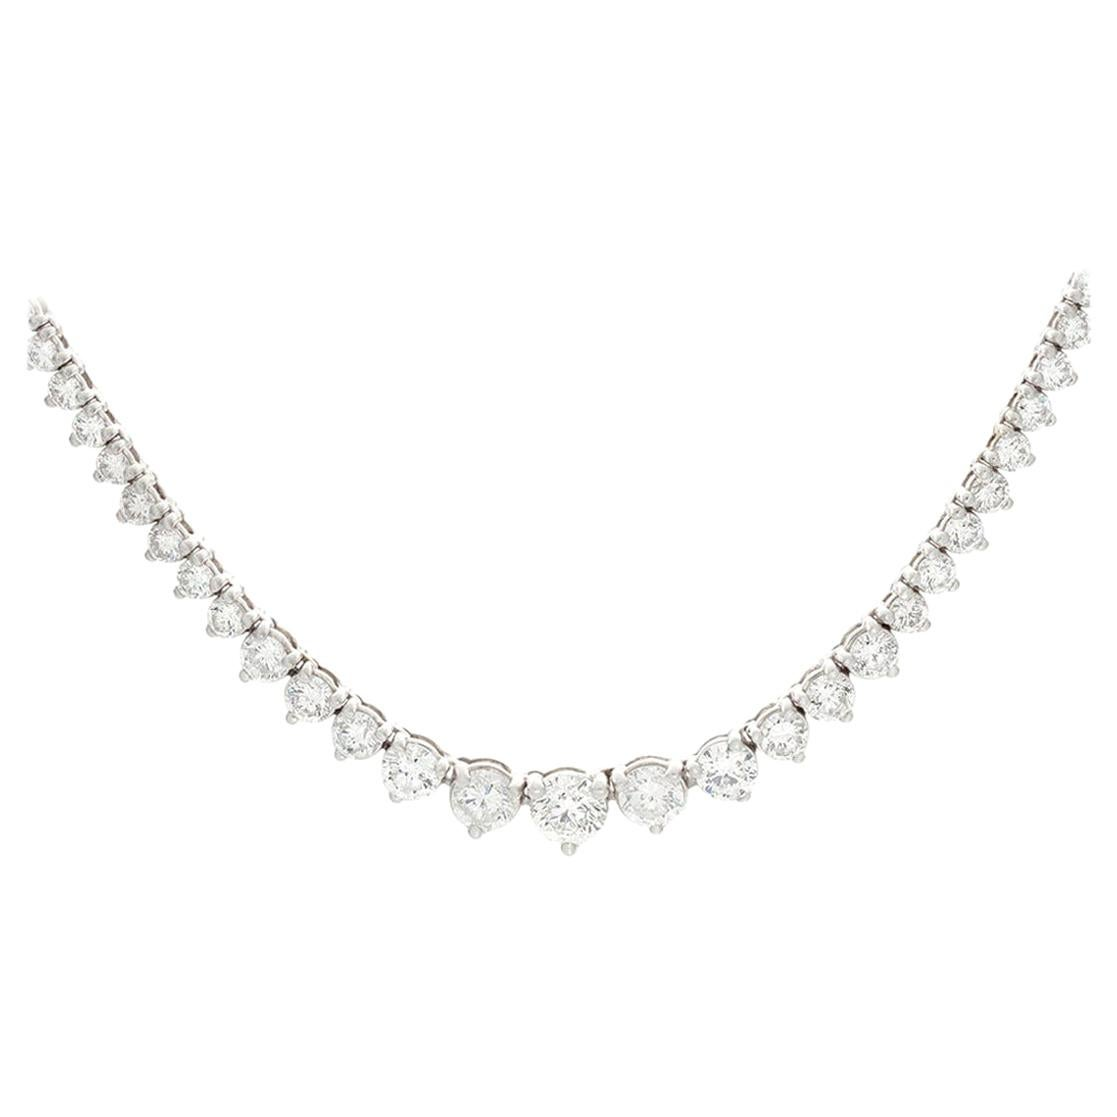 9 Carat Diamond Tennis Riviere Necklace 18 Carat White Gold, Made in Italy